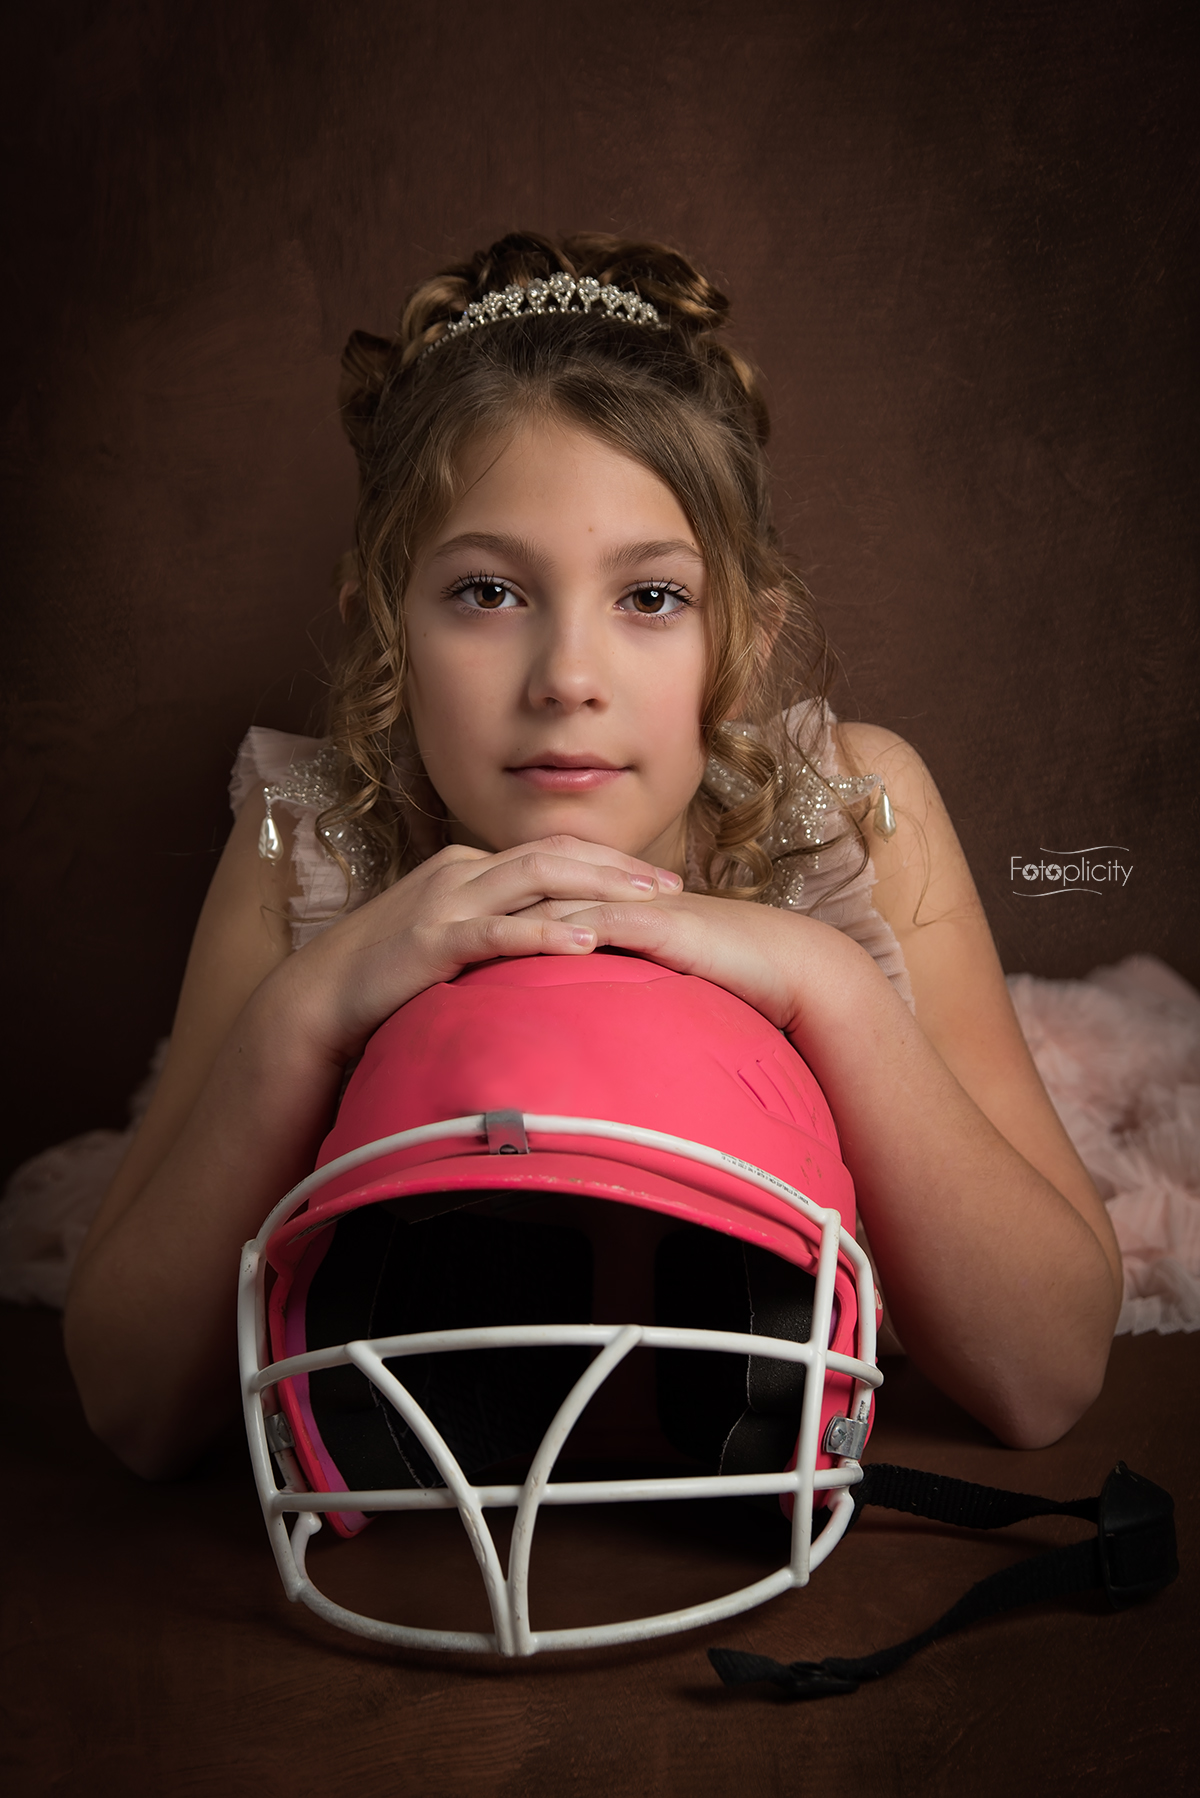 Softball Princess, NJ Photographer